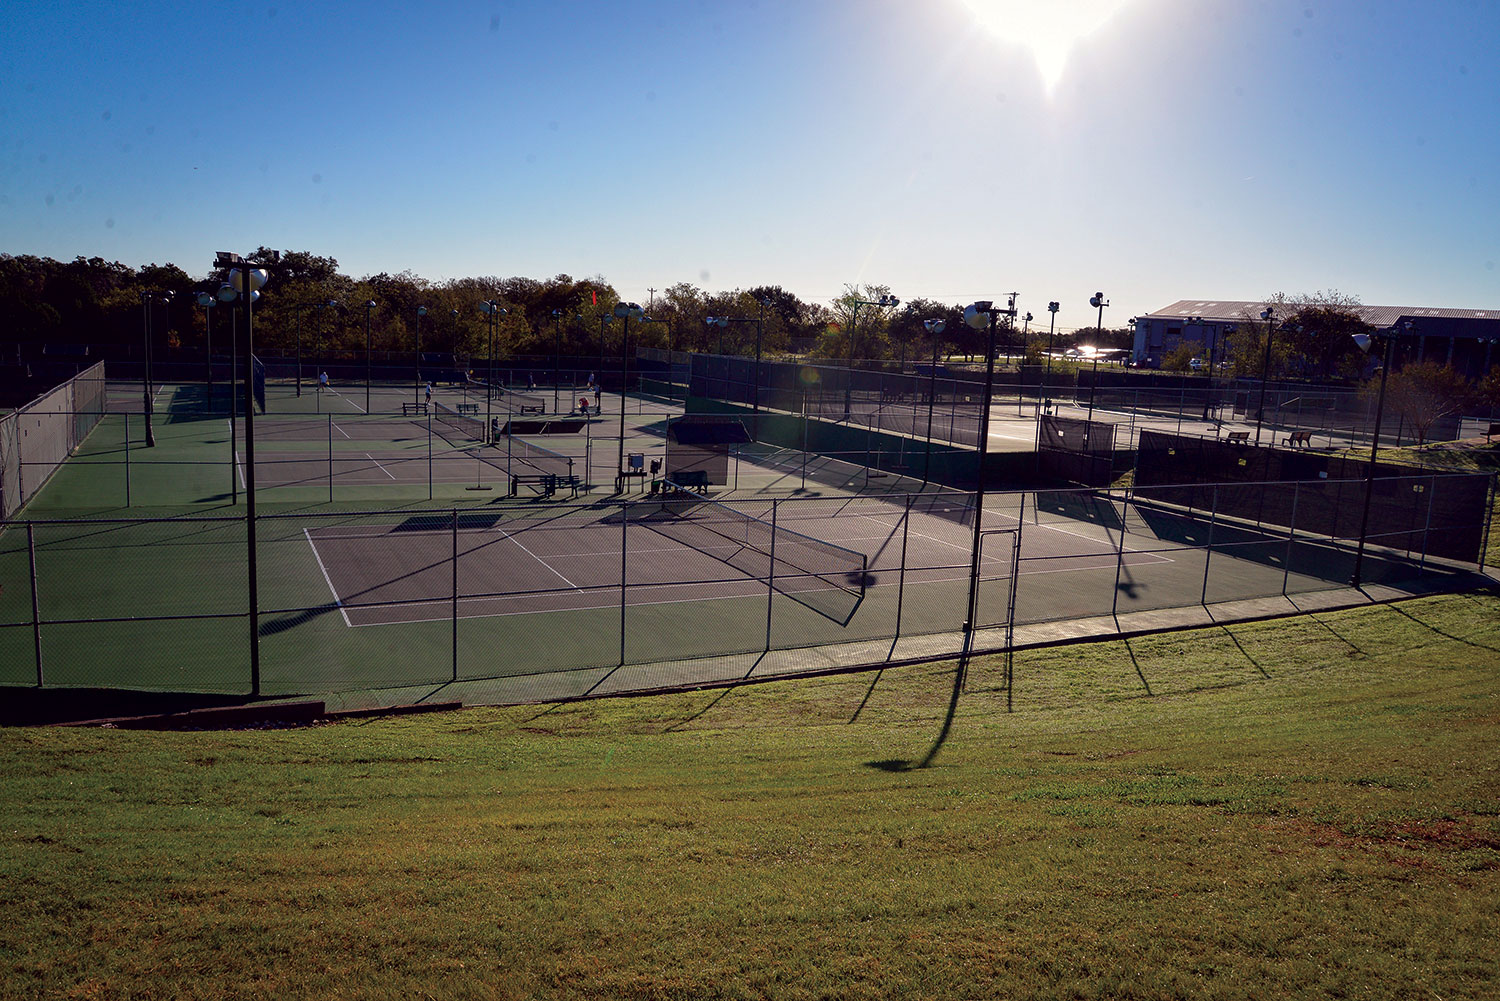 Empty tennis courts at the Georgetown Tennis Center